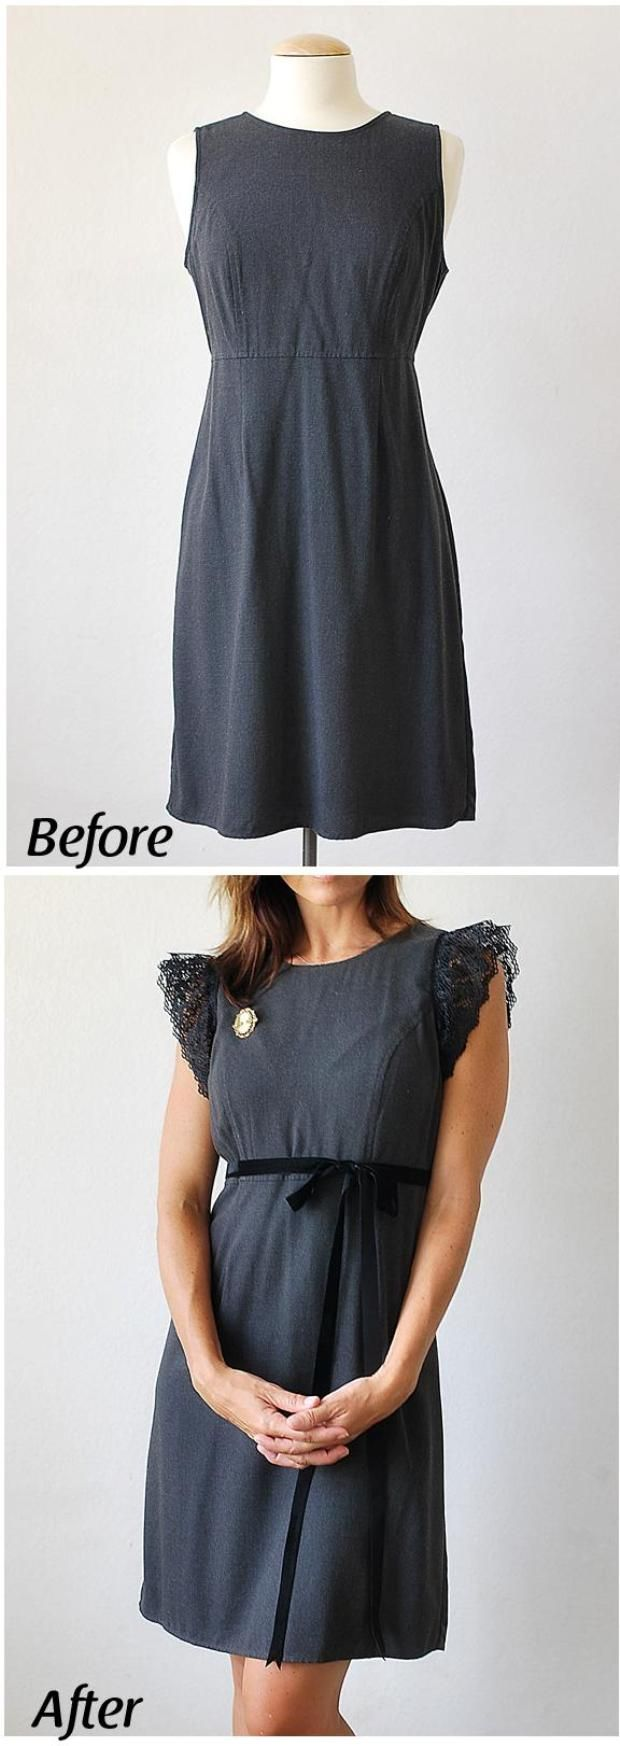 Fabulous Upcycled Clothing Projects Gray Gap dress makeover --- you could do something like this with ANY sleeveless outfit